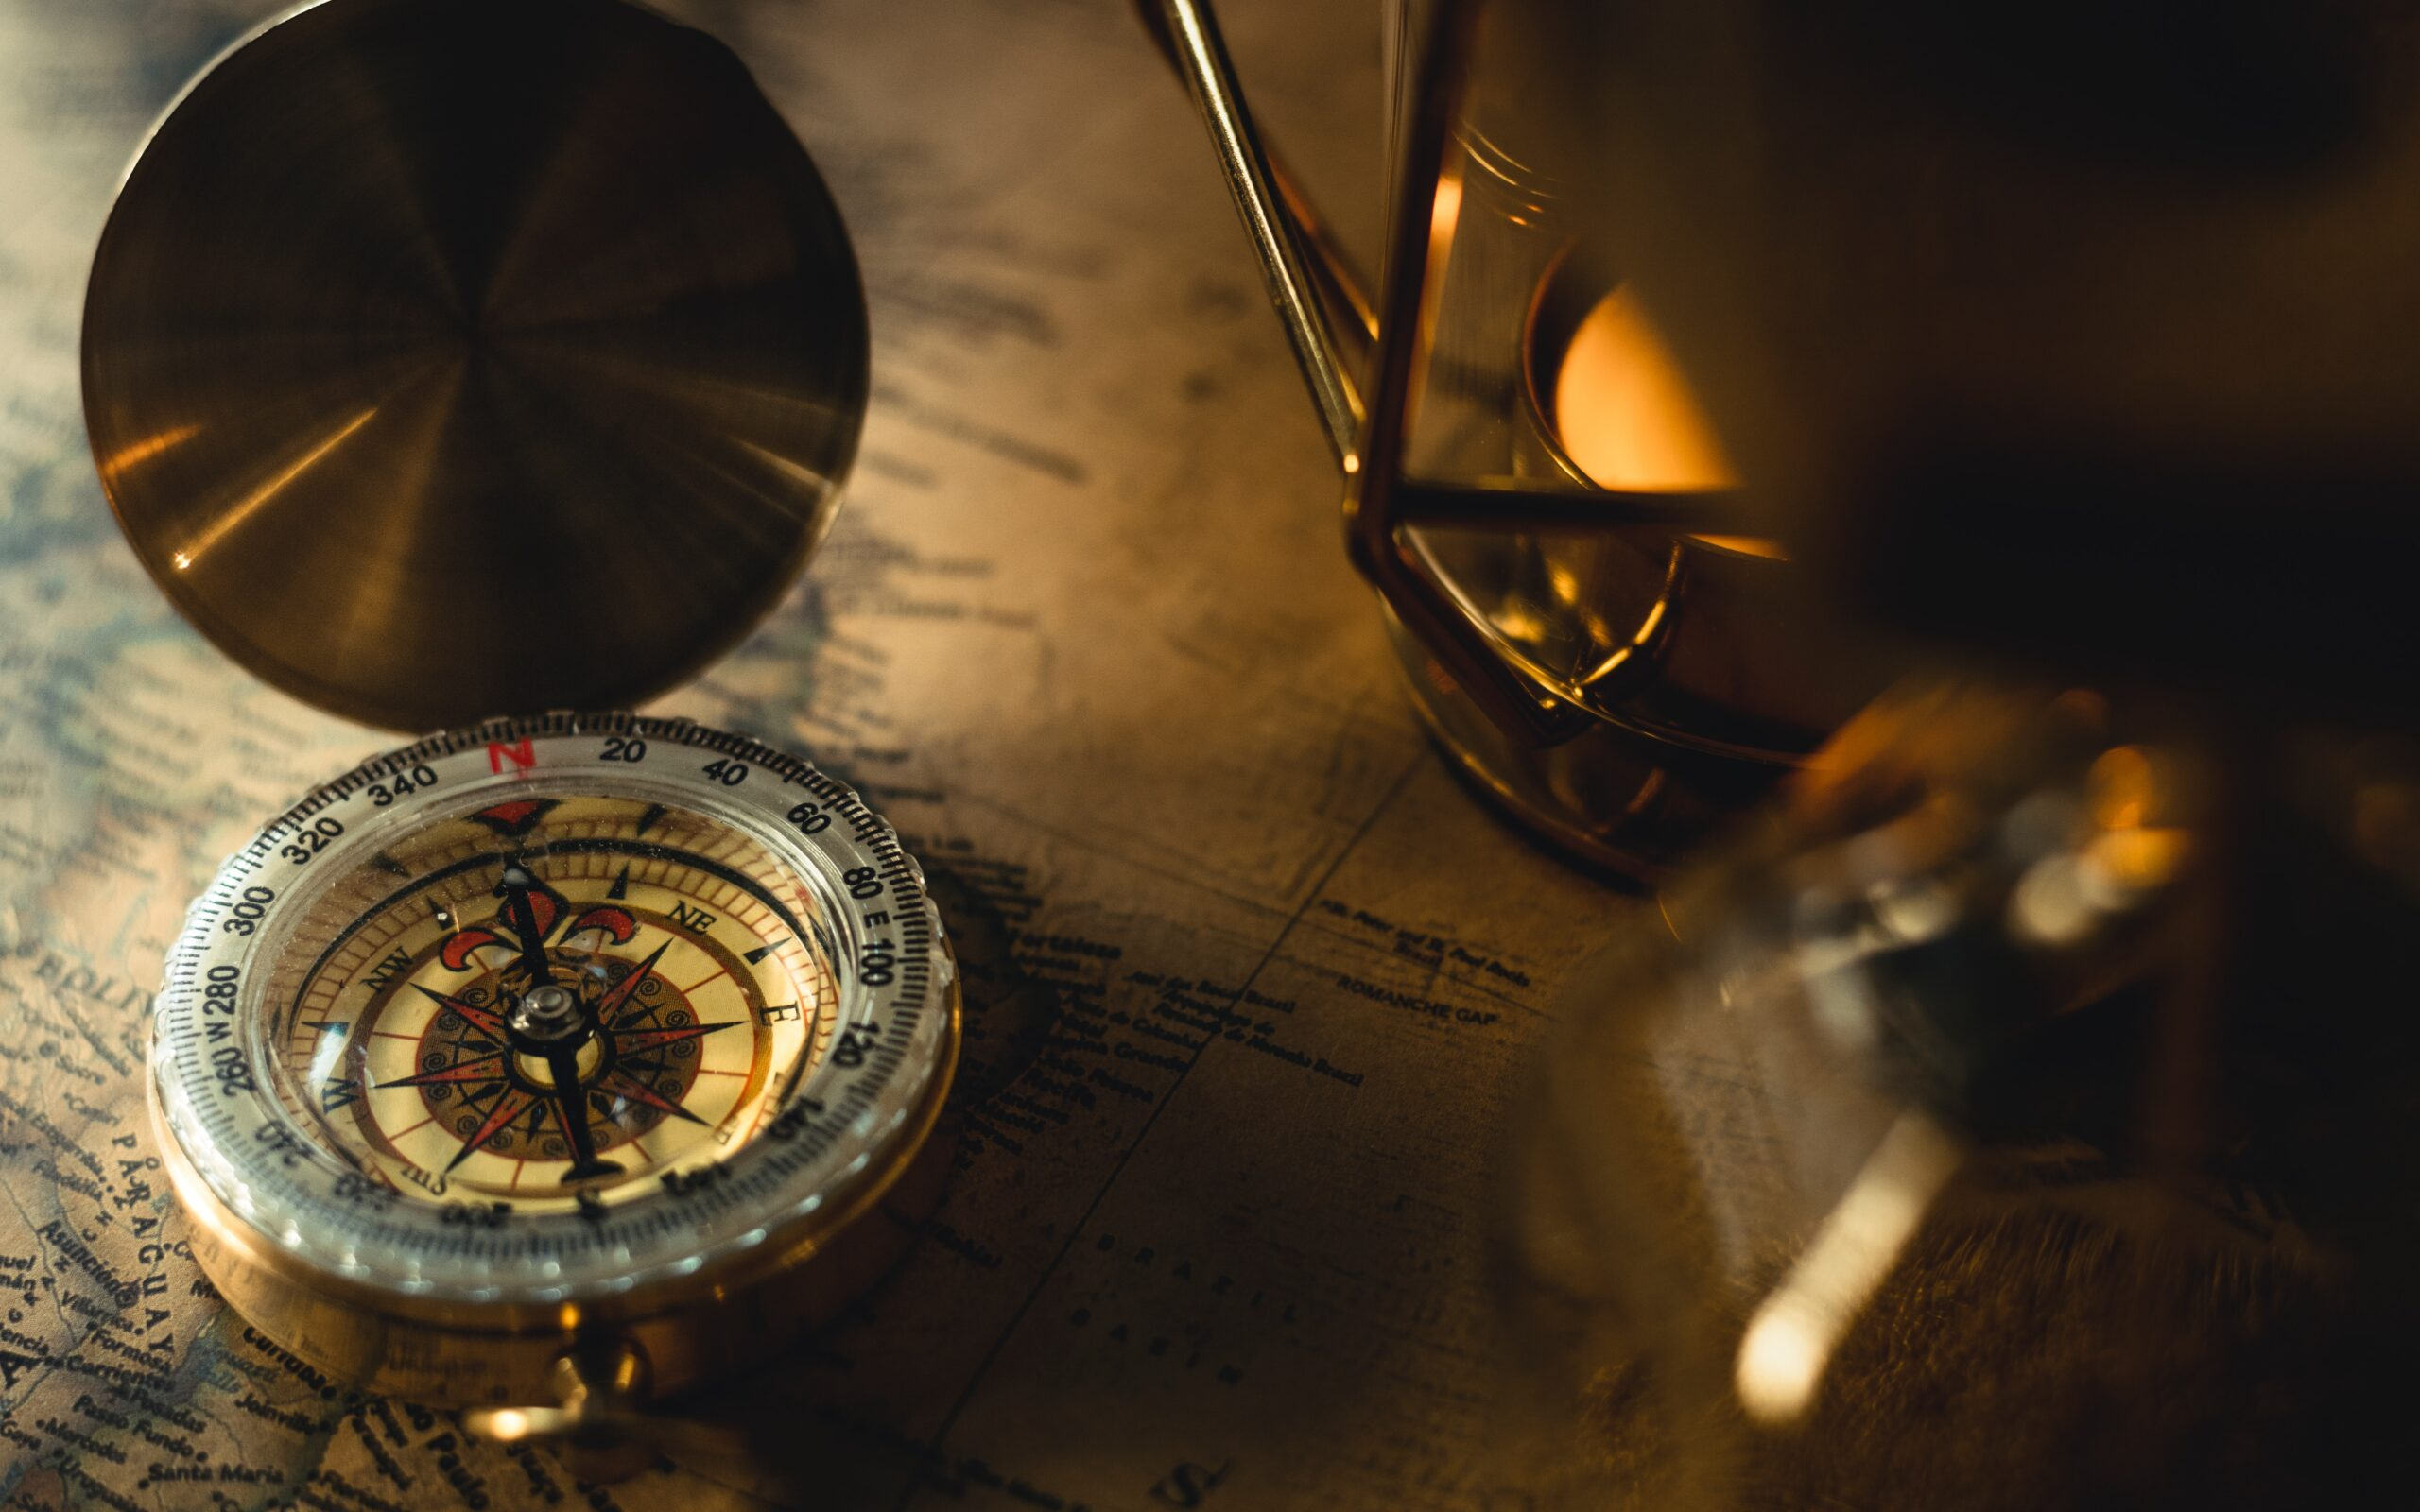 """A highly developed values system is like a compass. It serves as a guide to point you in the right direction when you are lost."""" Idowu Koyenikan"""""""